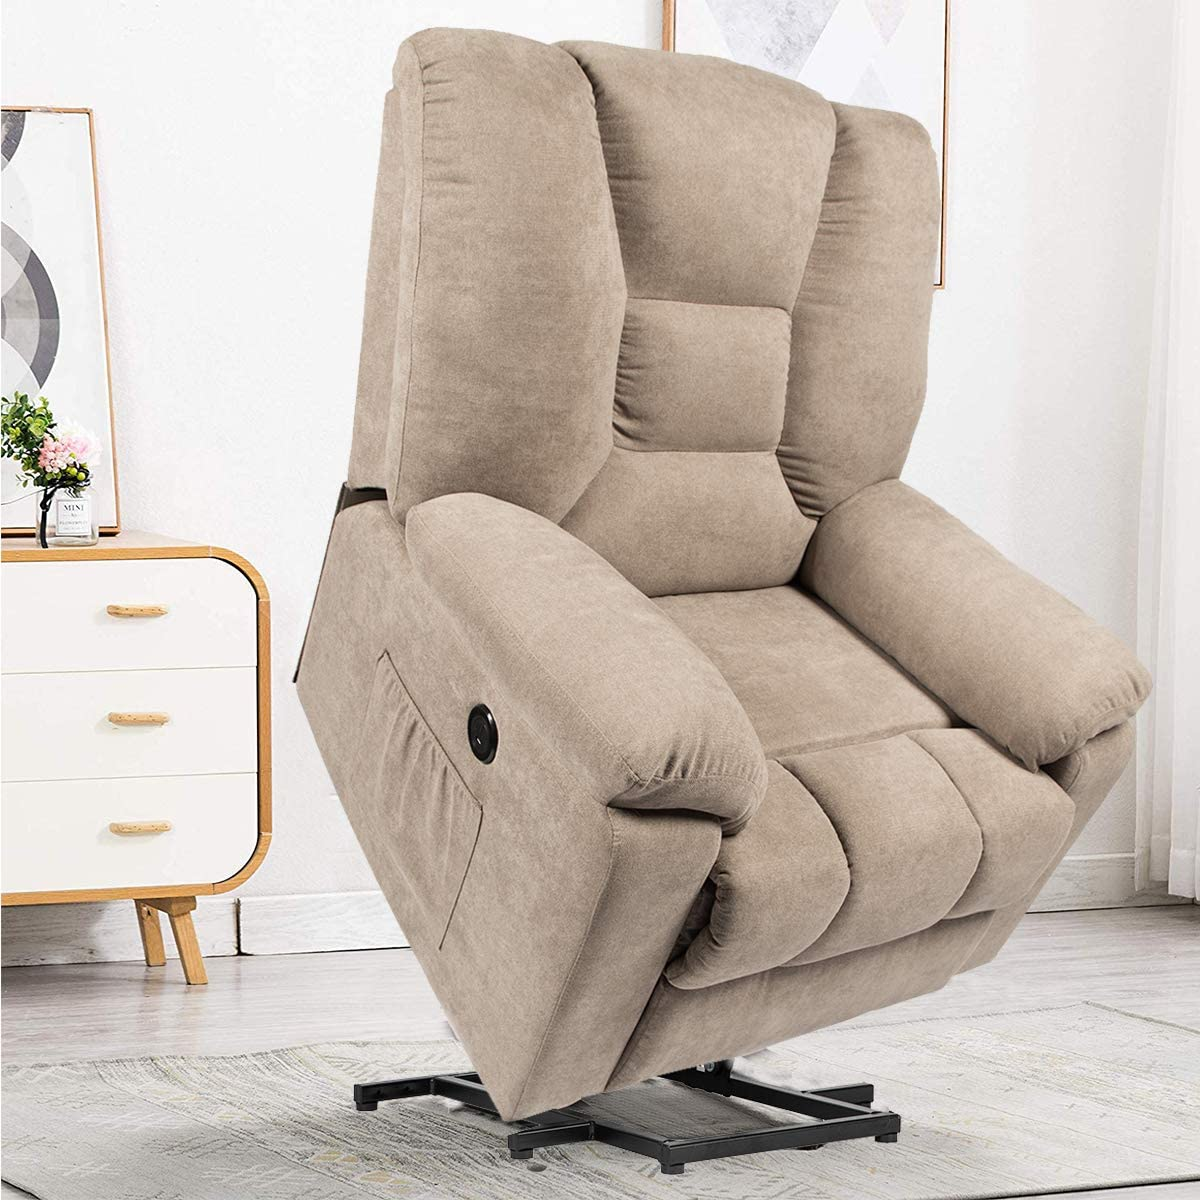 YODOLLA Electric Lift Electric Chair Recliner, Single Chair with Massage Function, Cotton Linen Living Room Bedroom Furniture with Remote Control, Dark Beige